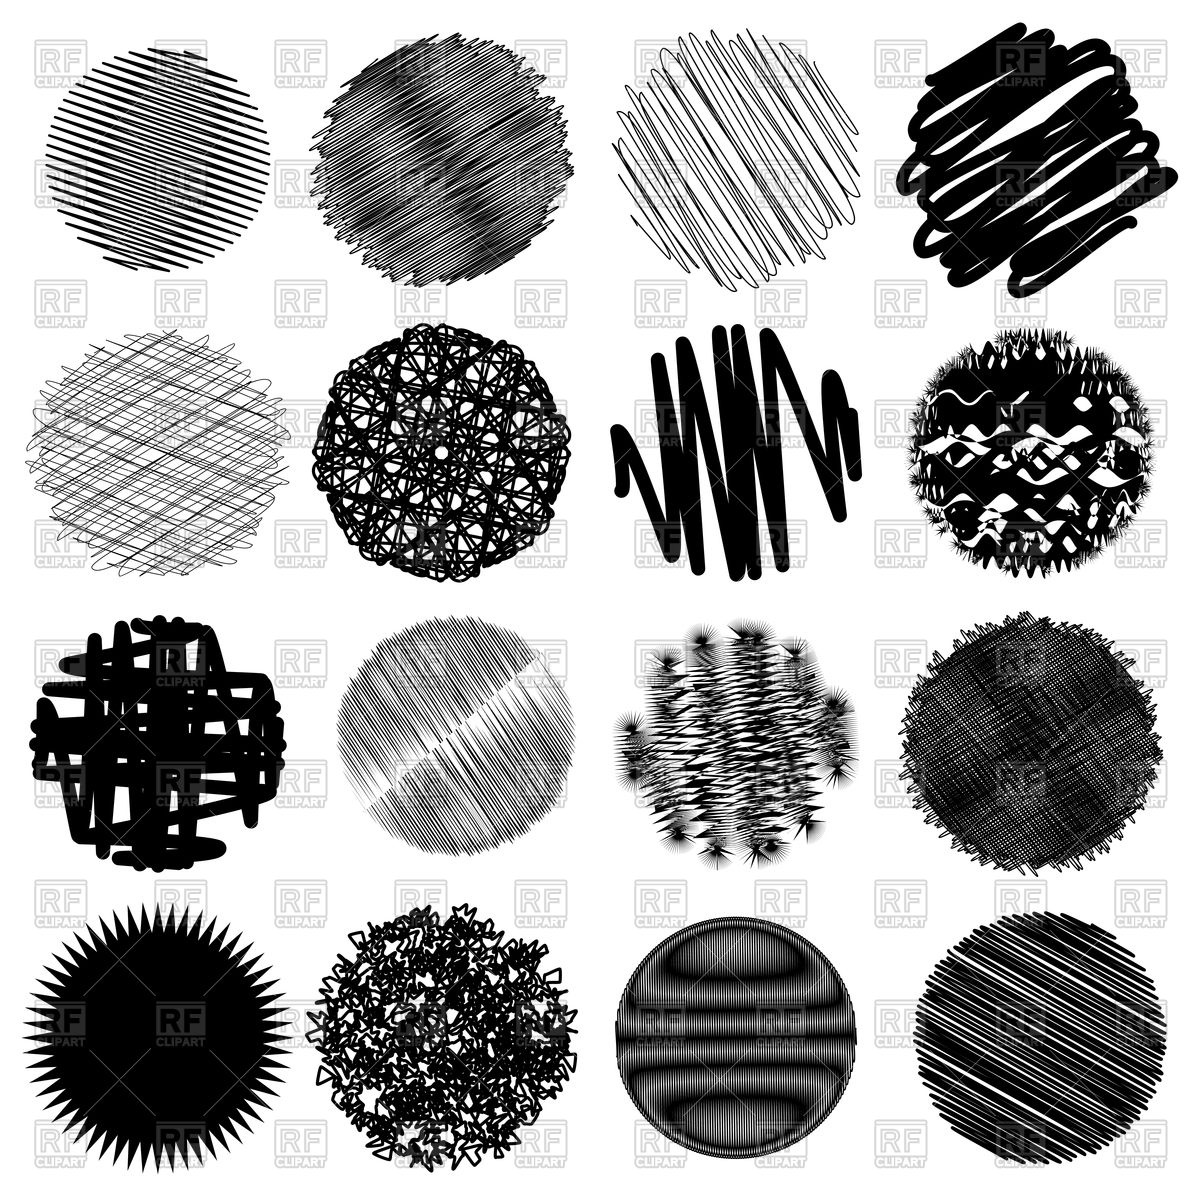 1200x1200 Hand Drawn Sketch Circles With Shading Fill Vector Image Vector